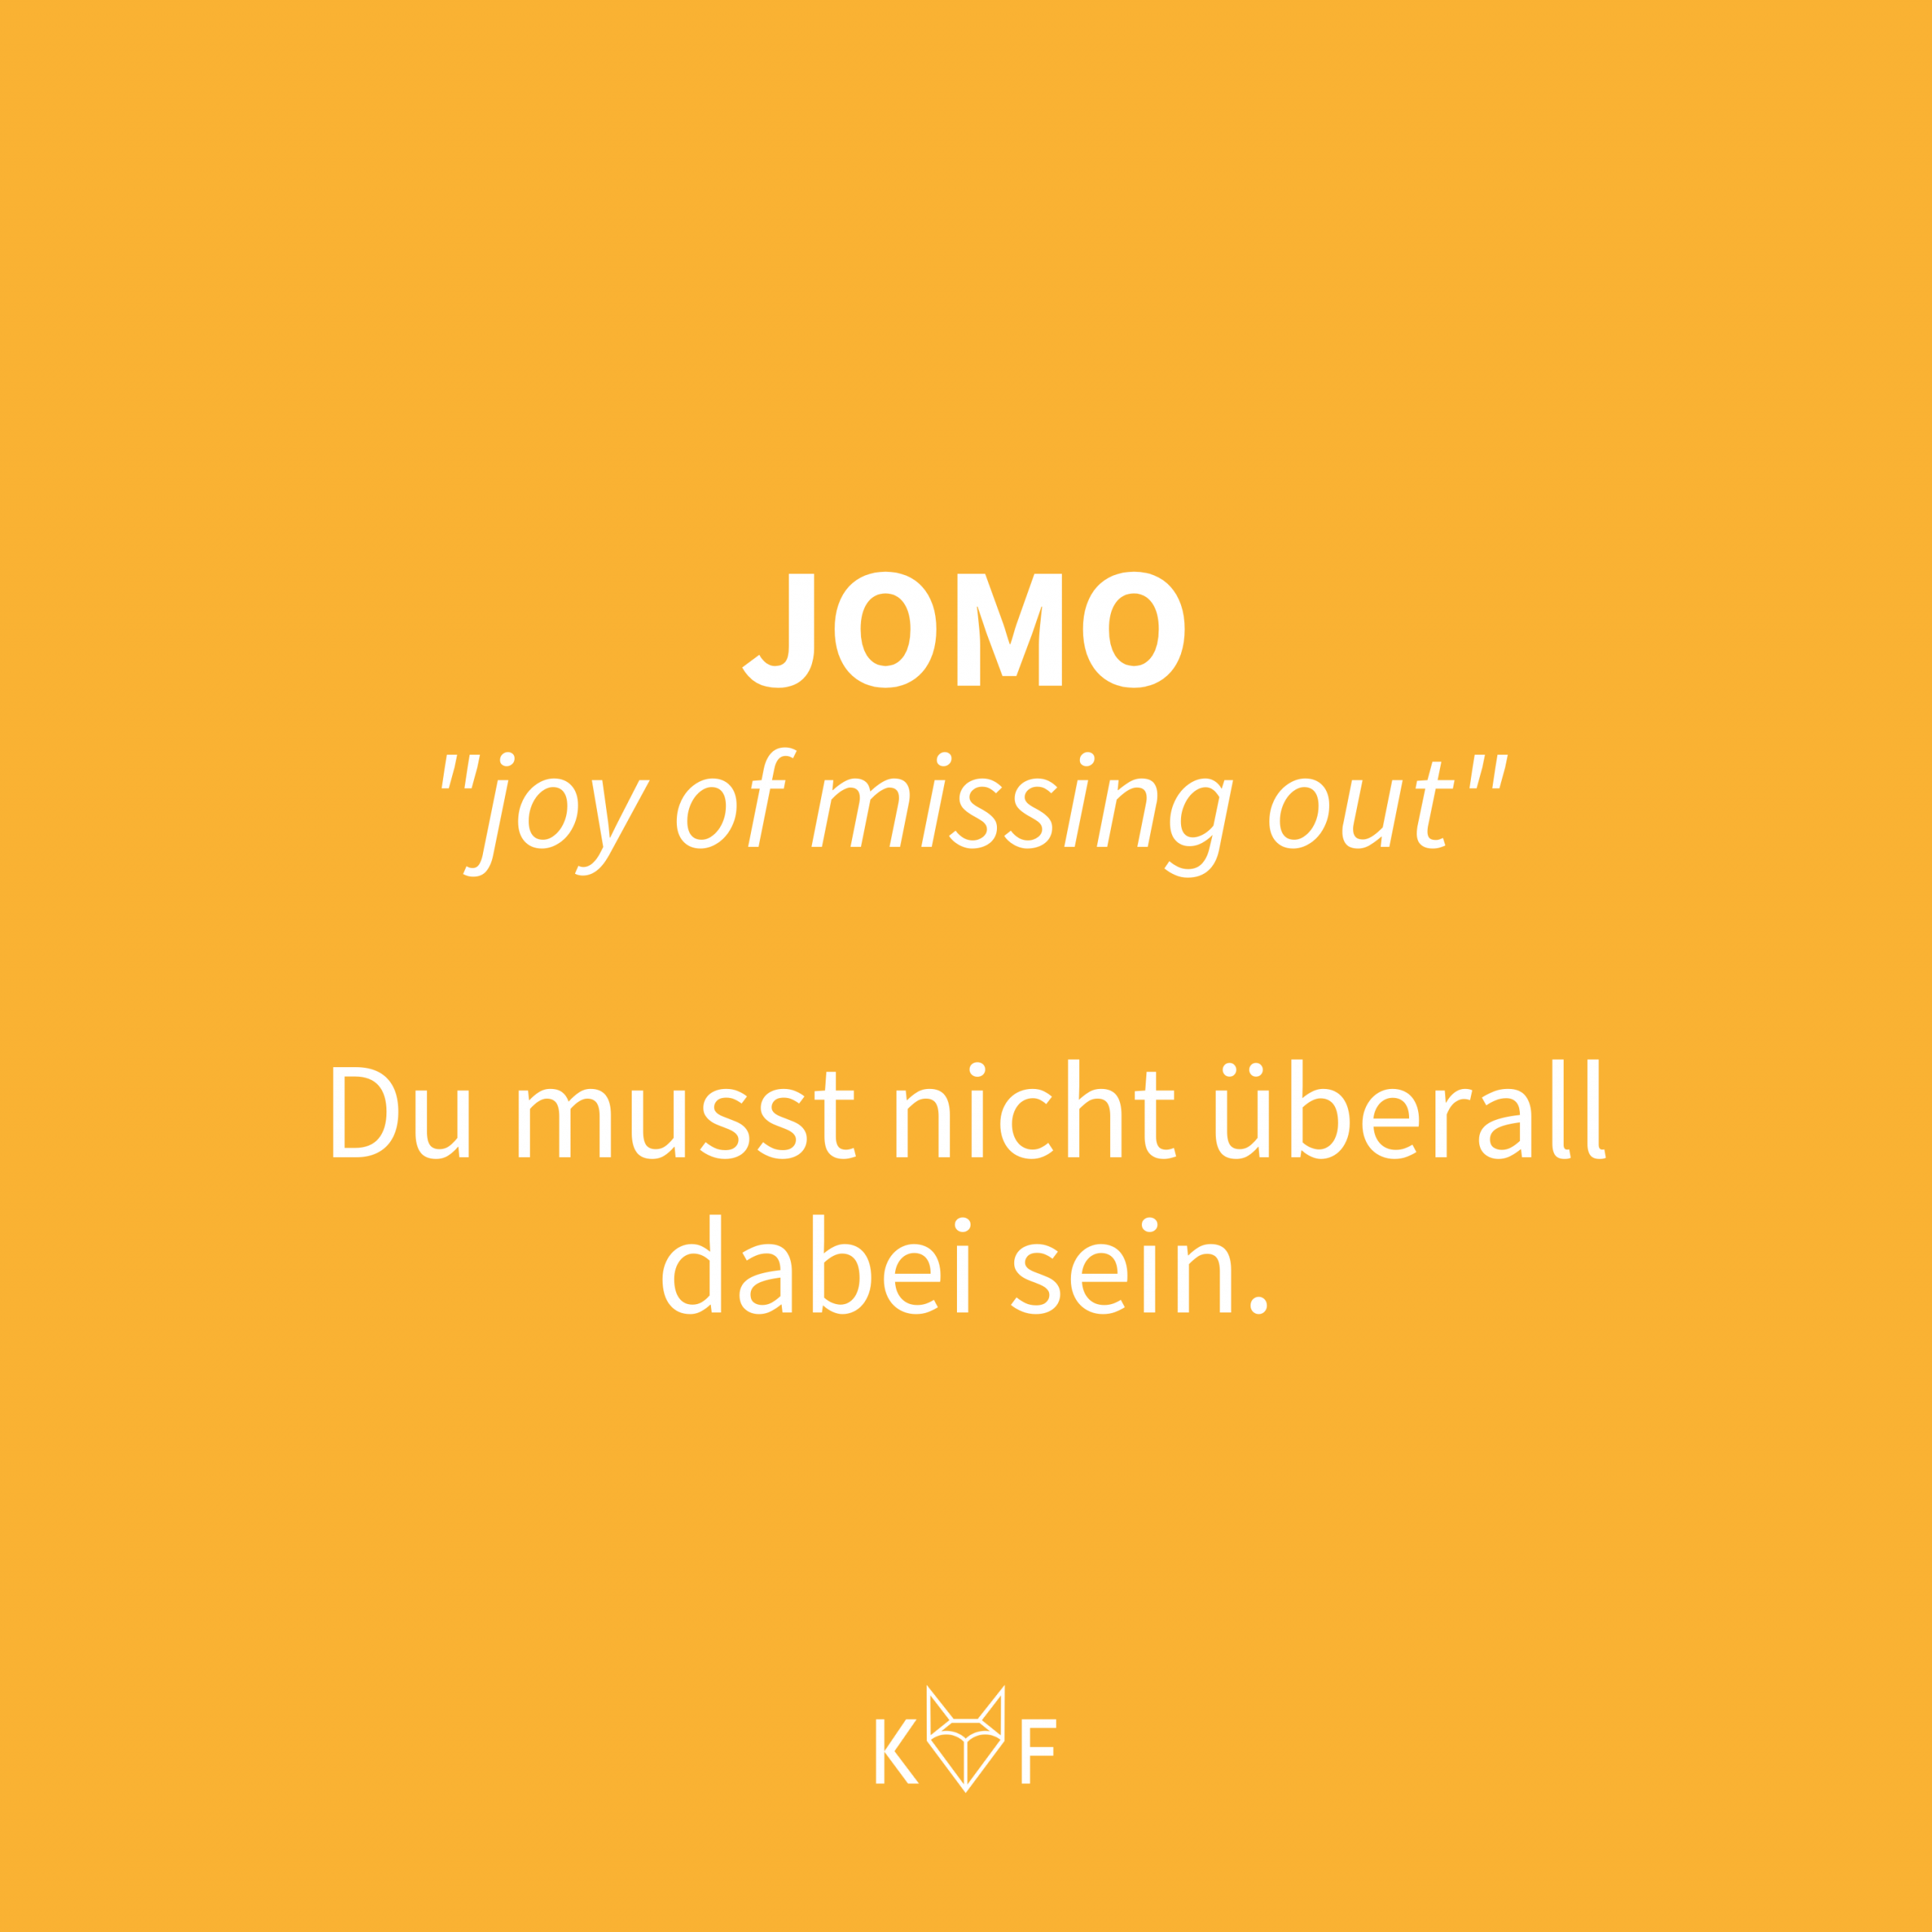 JOMO - Joy of missing out